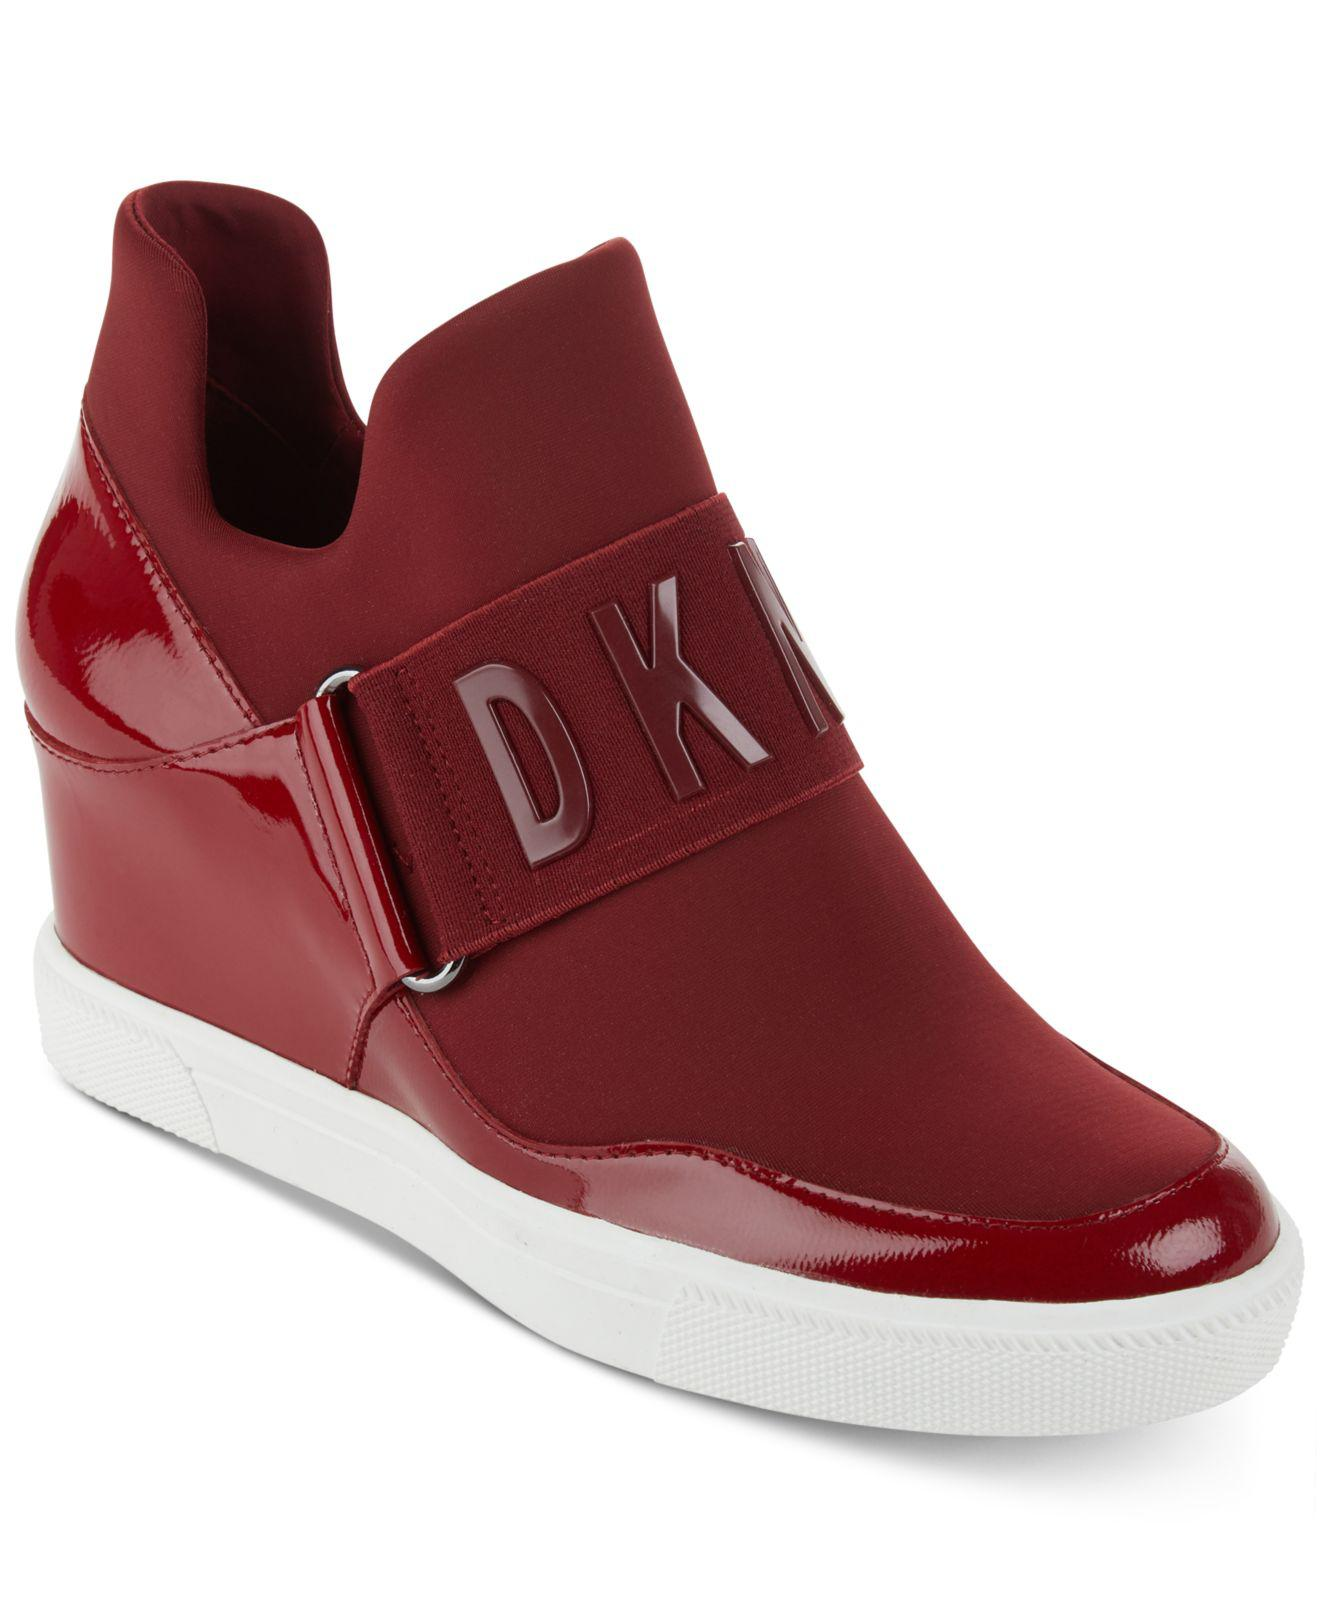 d4275e183e90 Lyst - DKNY Cosmos Platform Sneakers